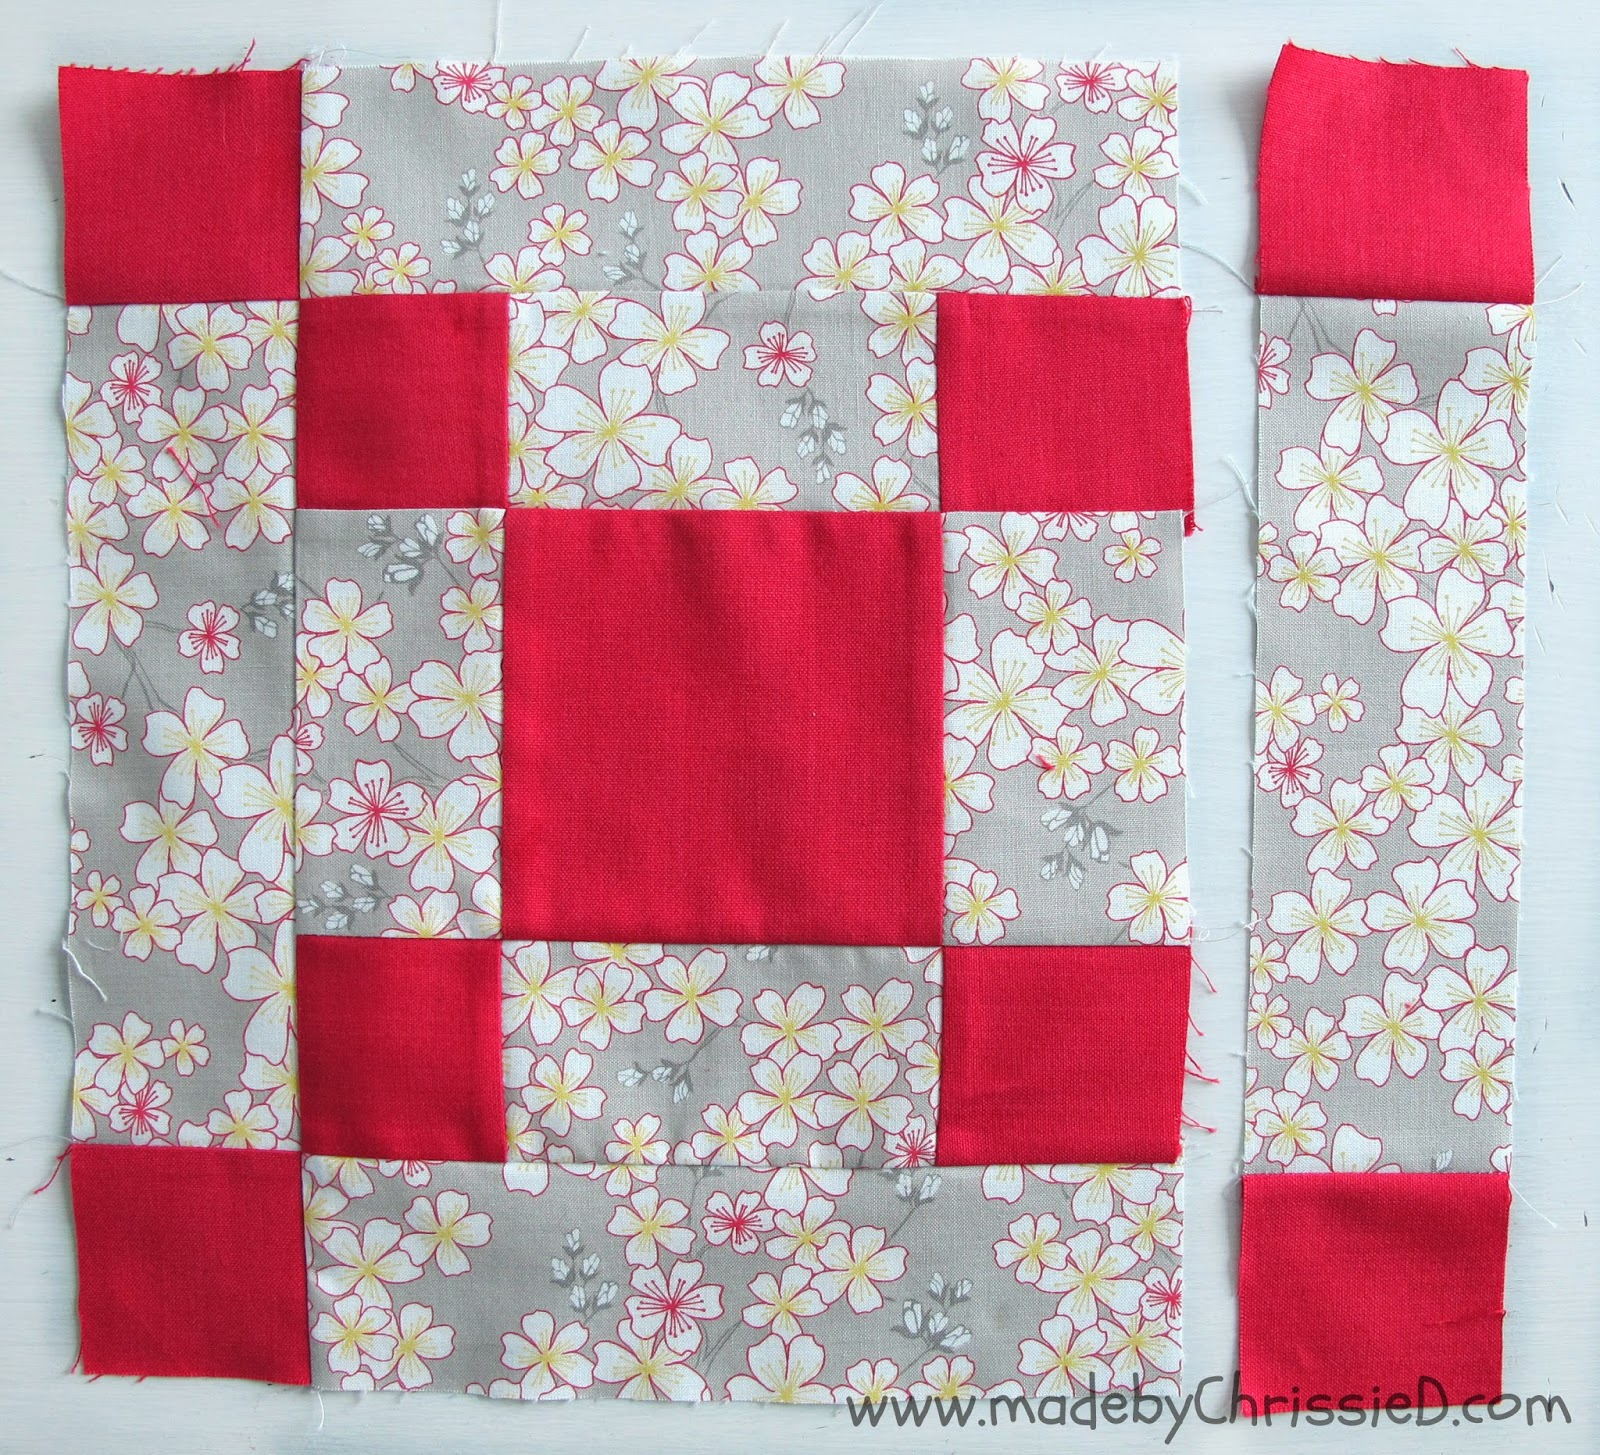 Single Irish Chain Block Tute by www.madebyChrissieD.com